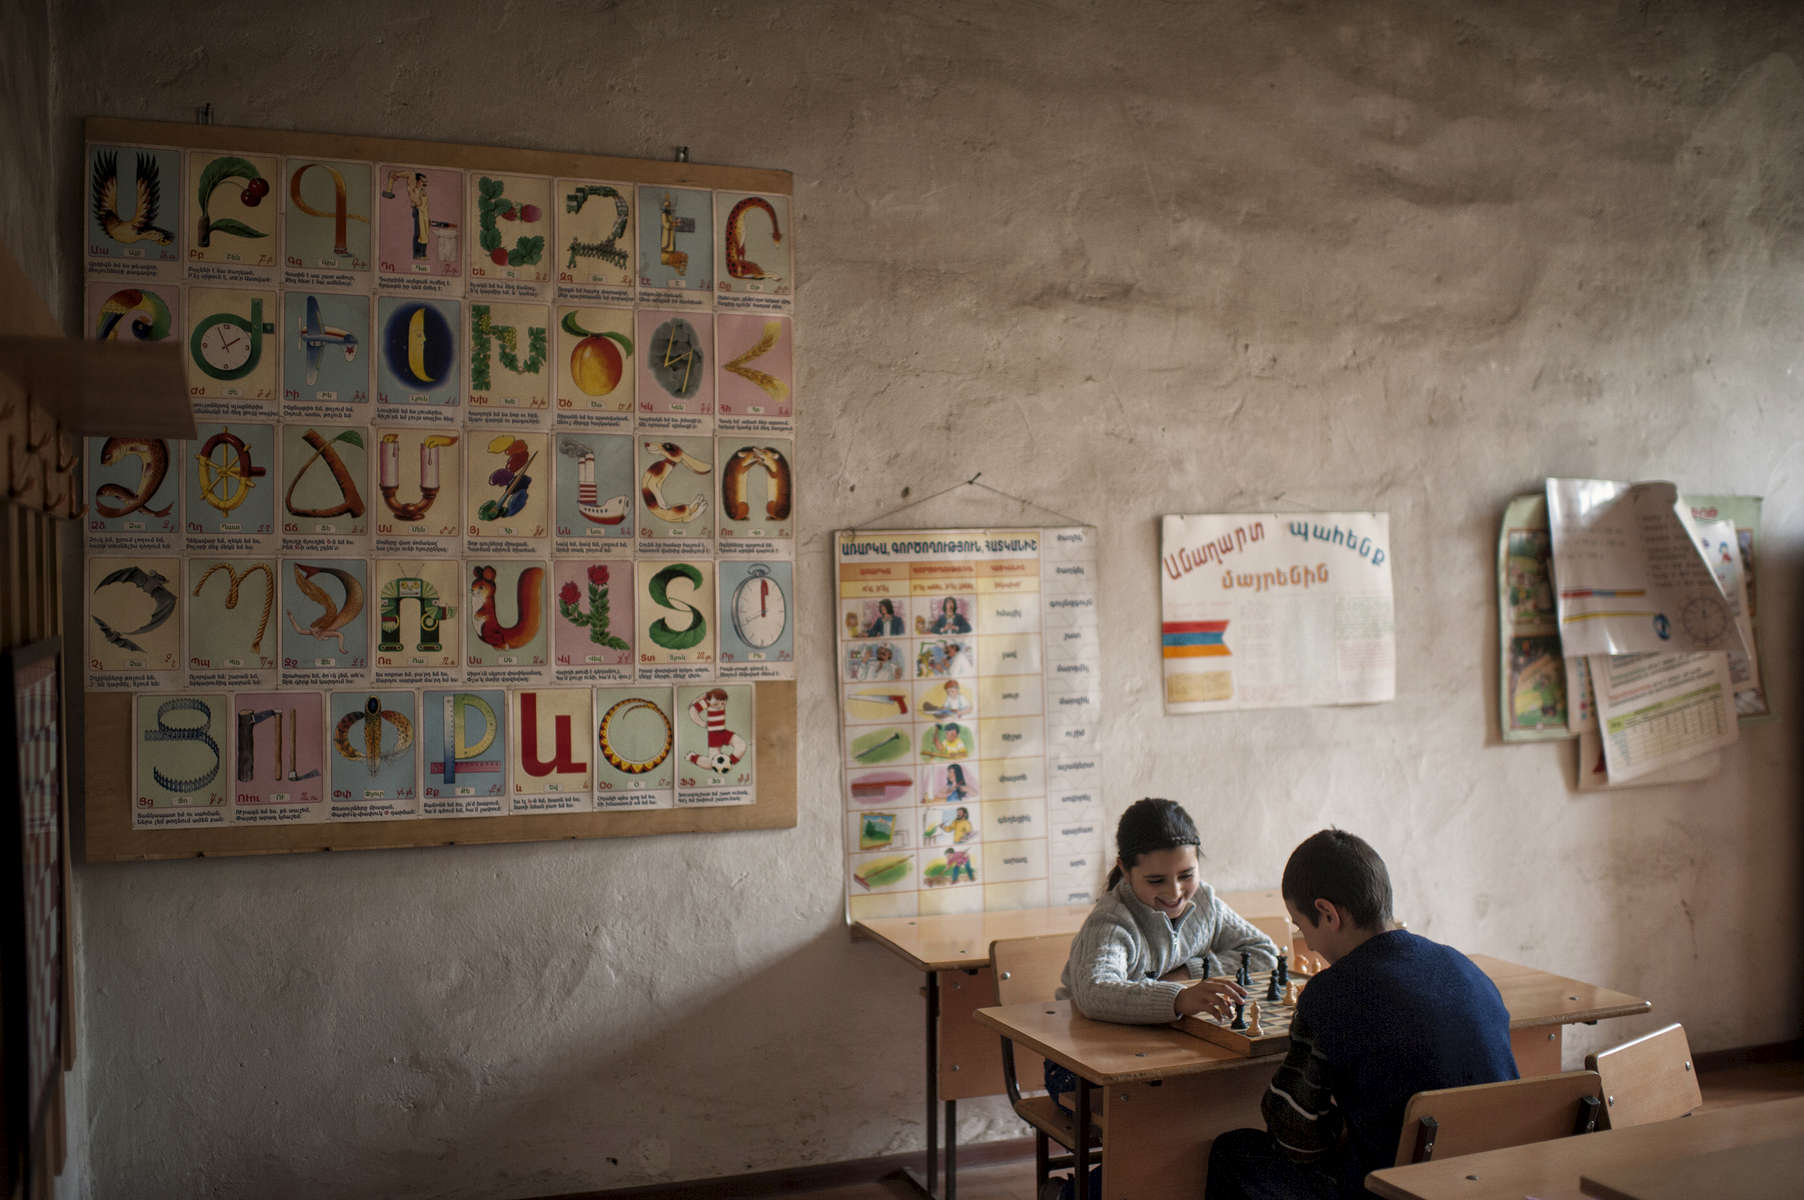 Nine year-old Diana Budaghyan beats ten year-old Artur Petrosyan in chess during school in Khtsaberd village. The area is very heavily mined, and HALO is trying to raise the funds to clear the minefields.